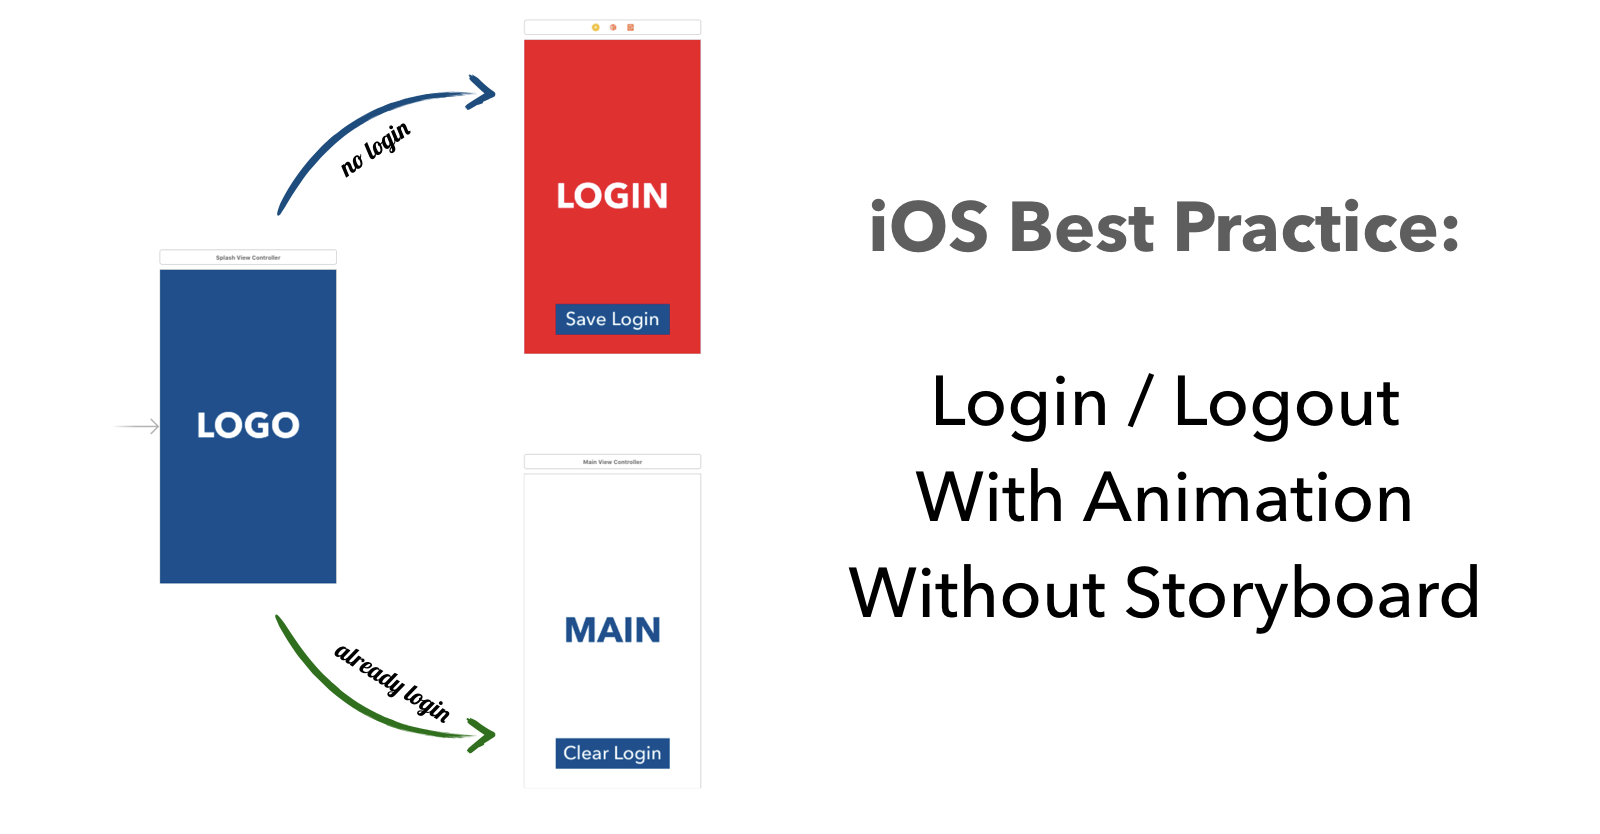 Best Practice for iOS Login / Logout With Animation